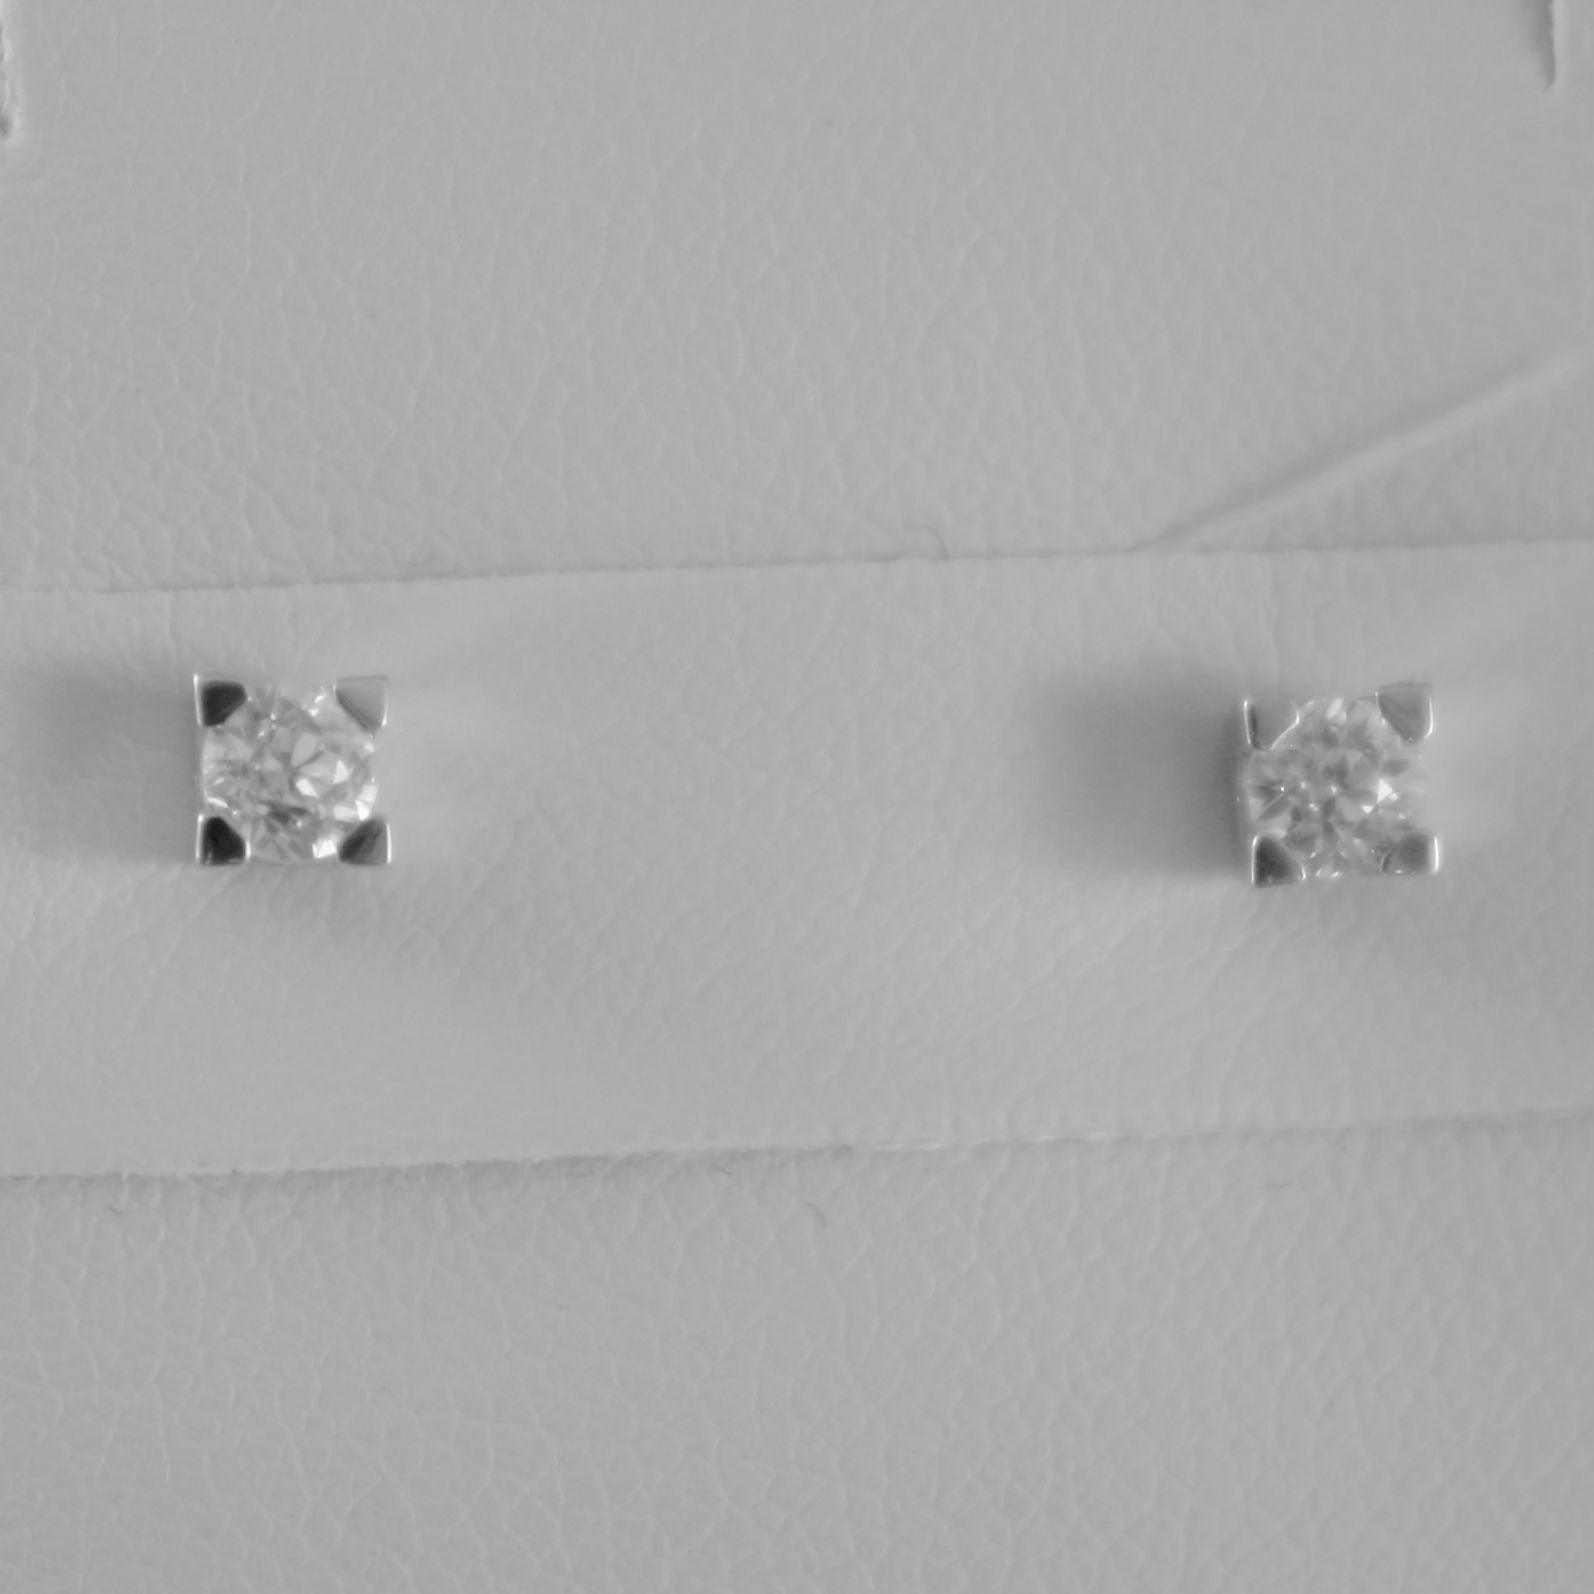 18K WHITE GOLD SQUARE 3 mm EARRINGS DIAMOND DIAMONDS 0.25 CT, MADE IN ITALY